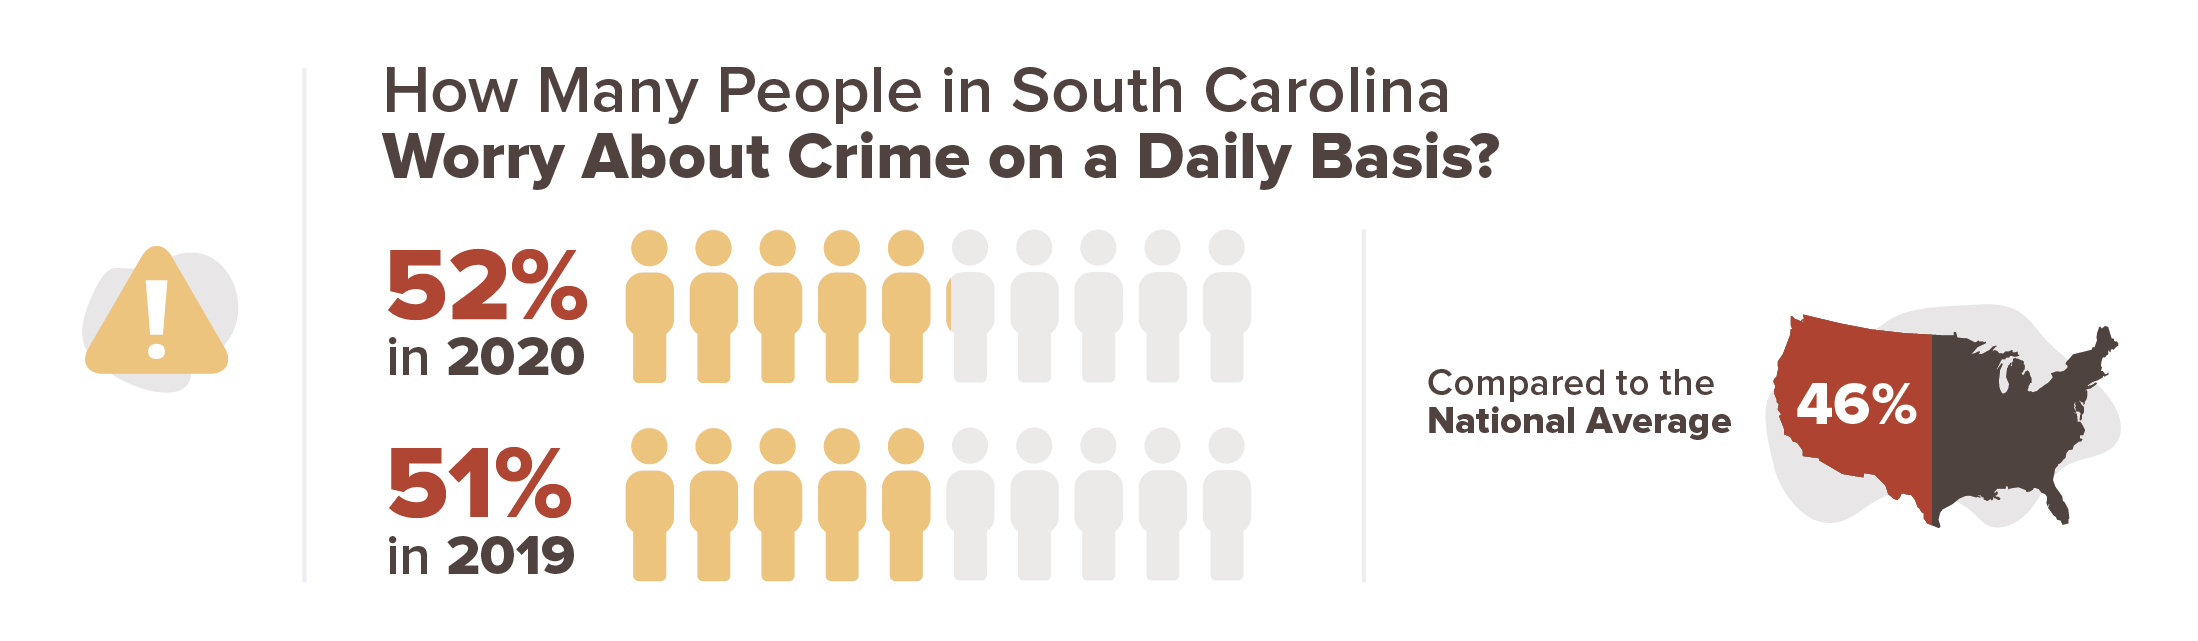 52 percent are concerned about crime on a daily basis